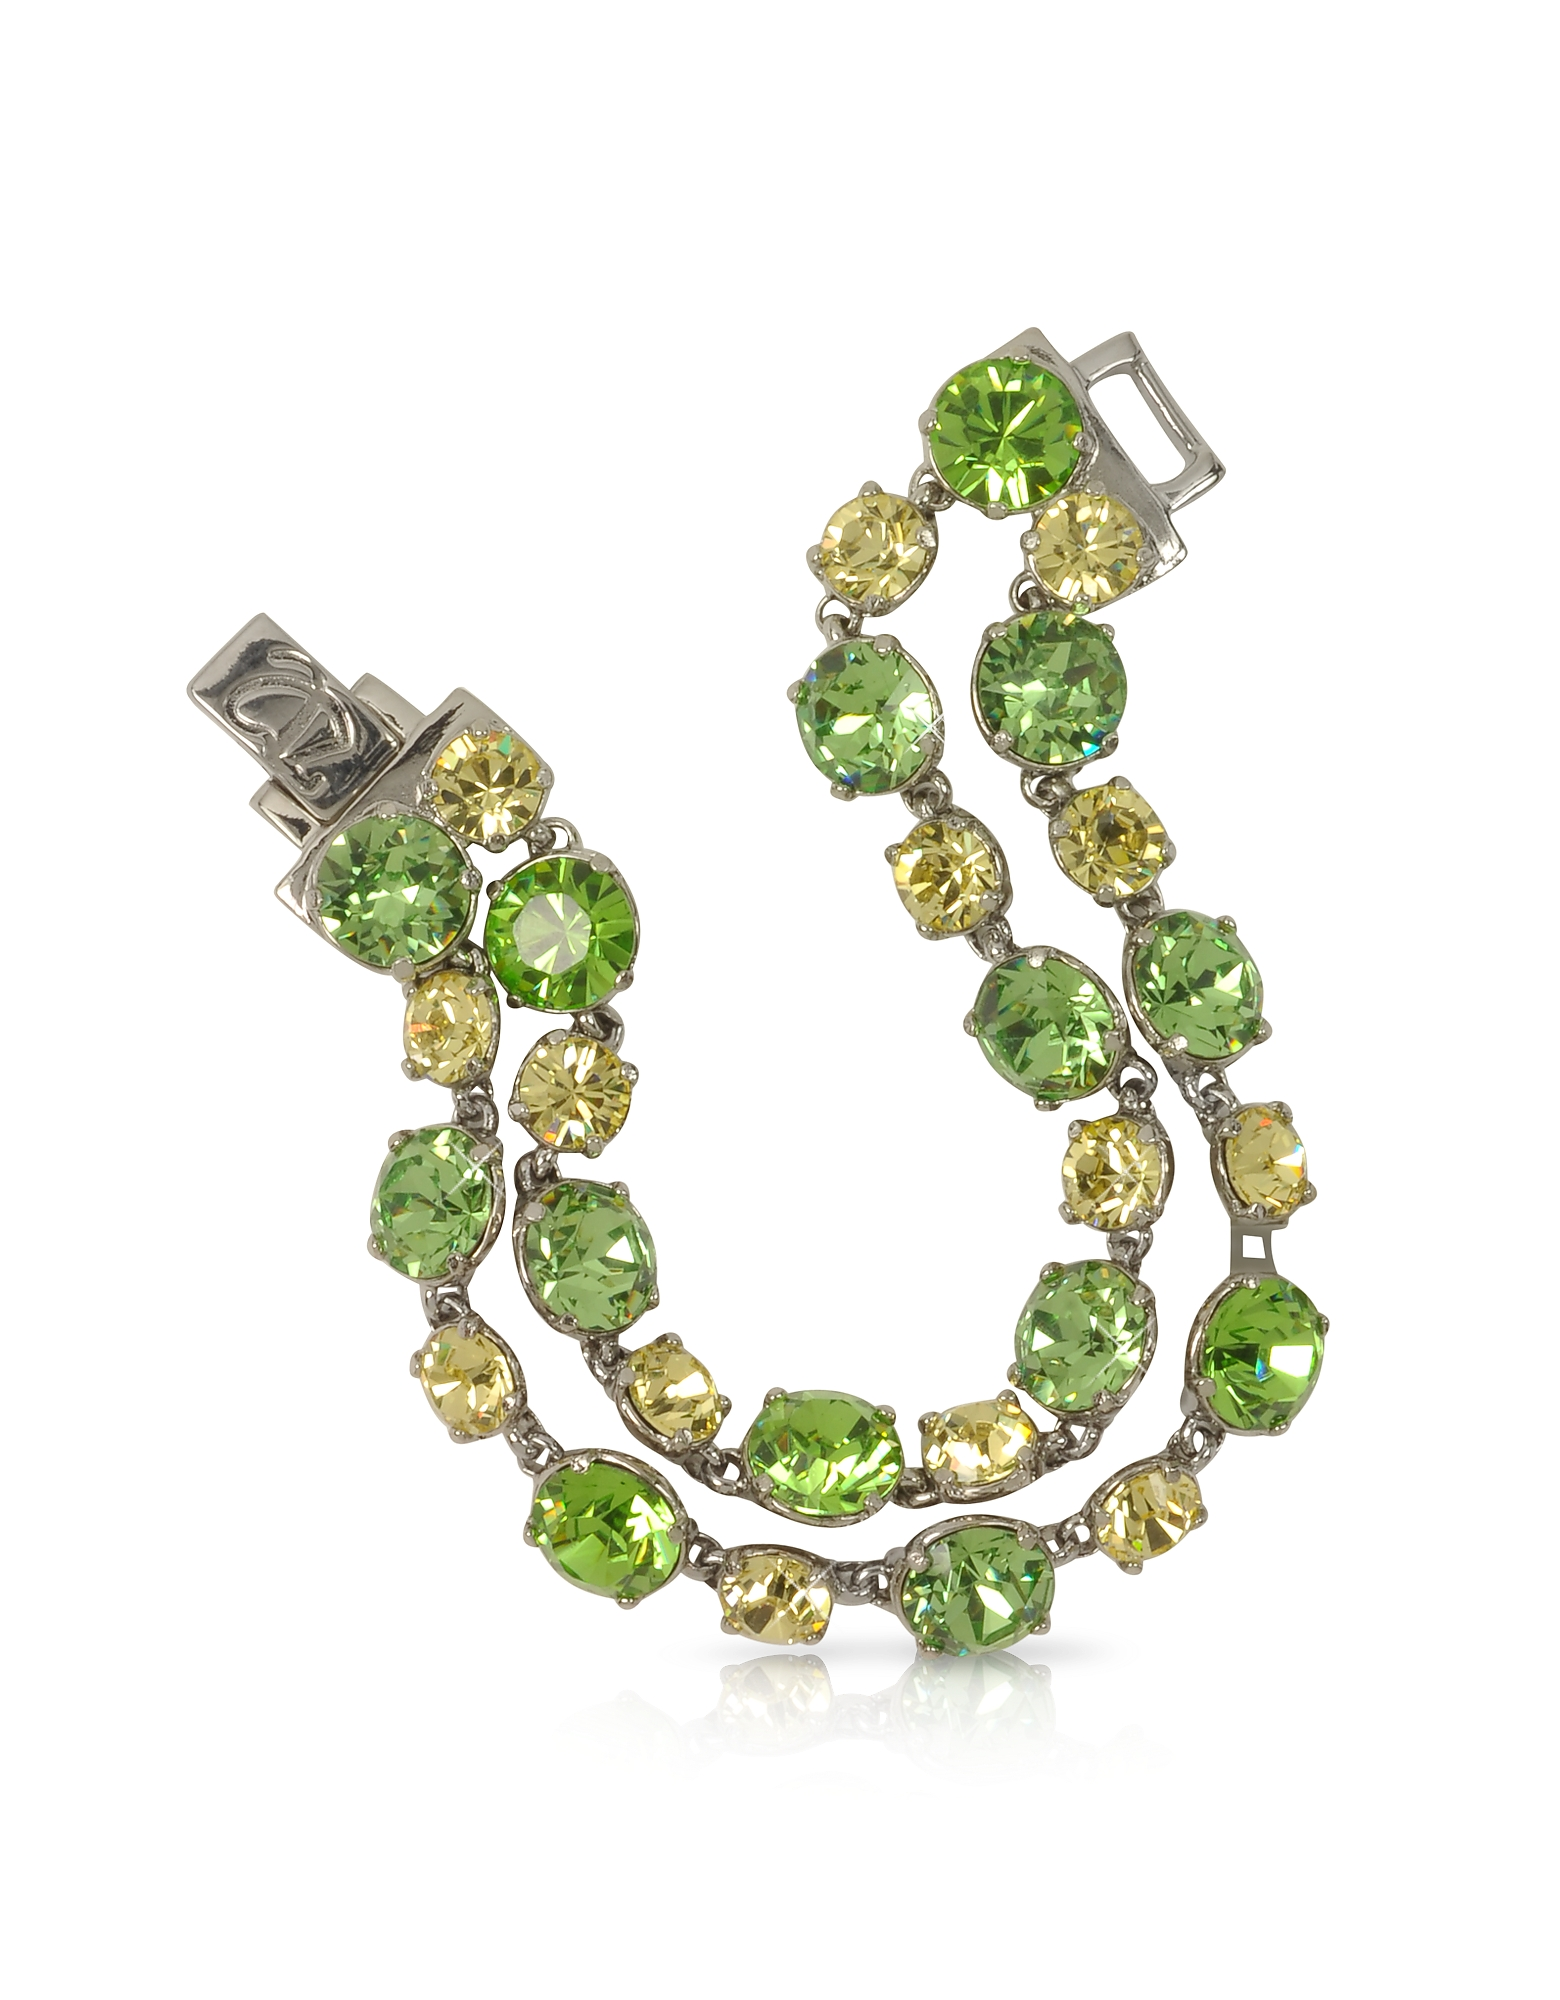 Forzieri Bracelets, Green and Pale Yellow Crystal Bracelet